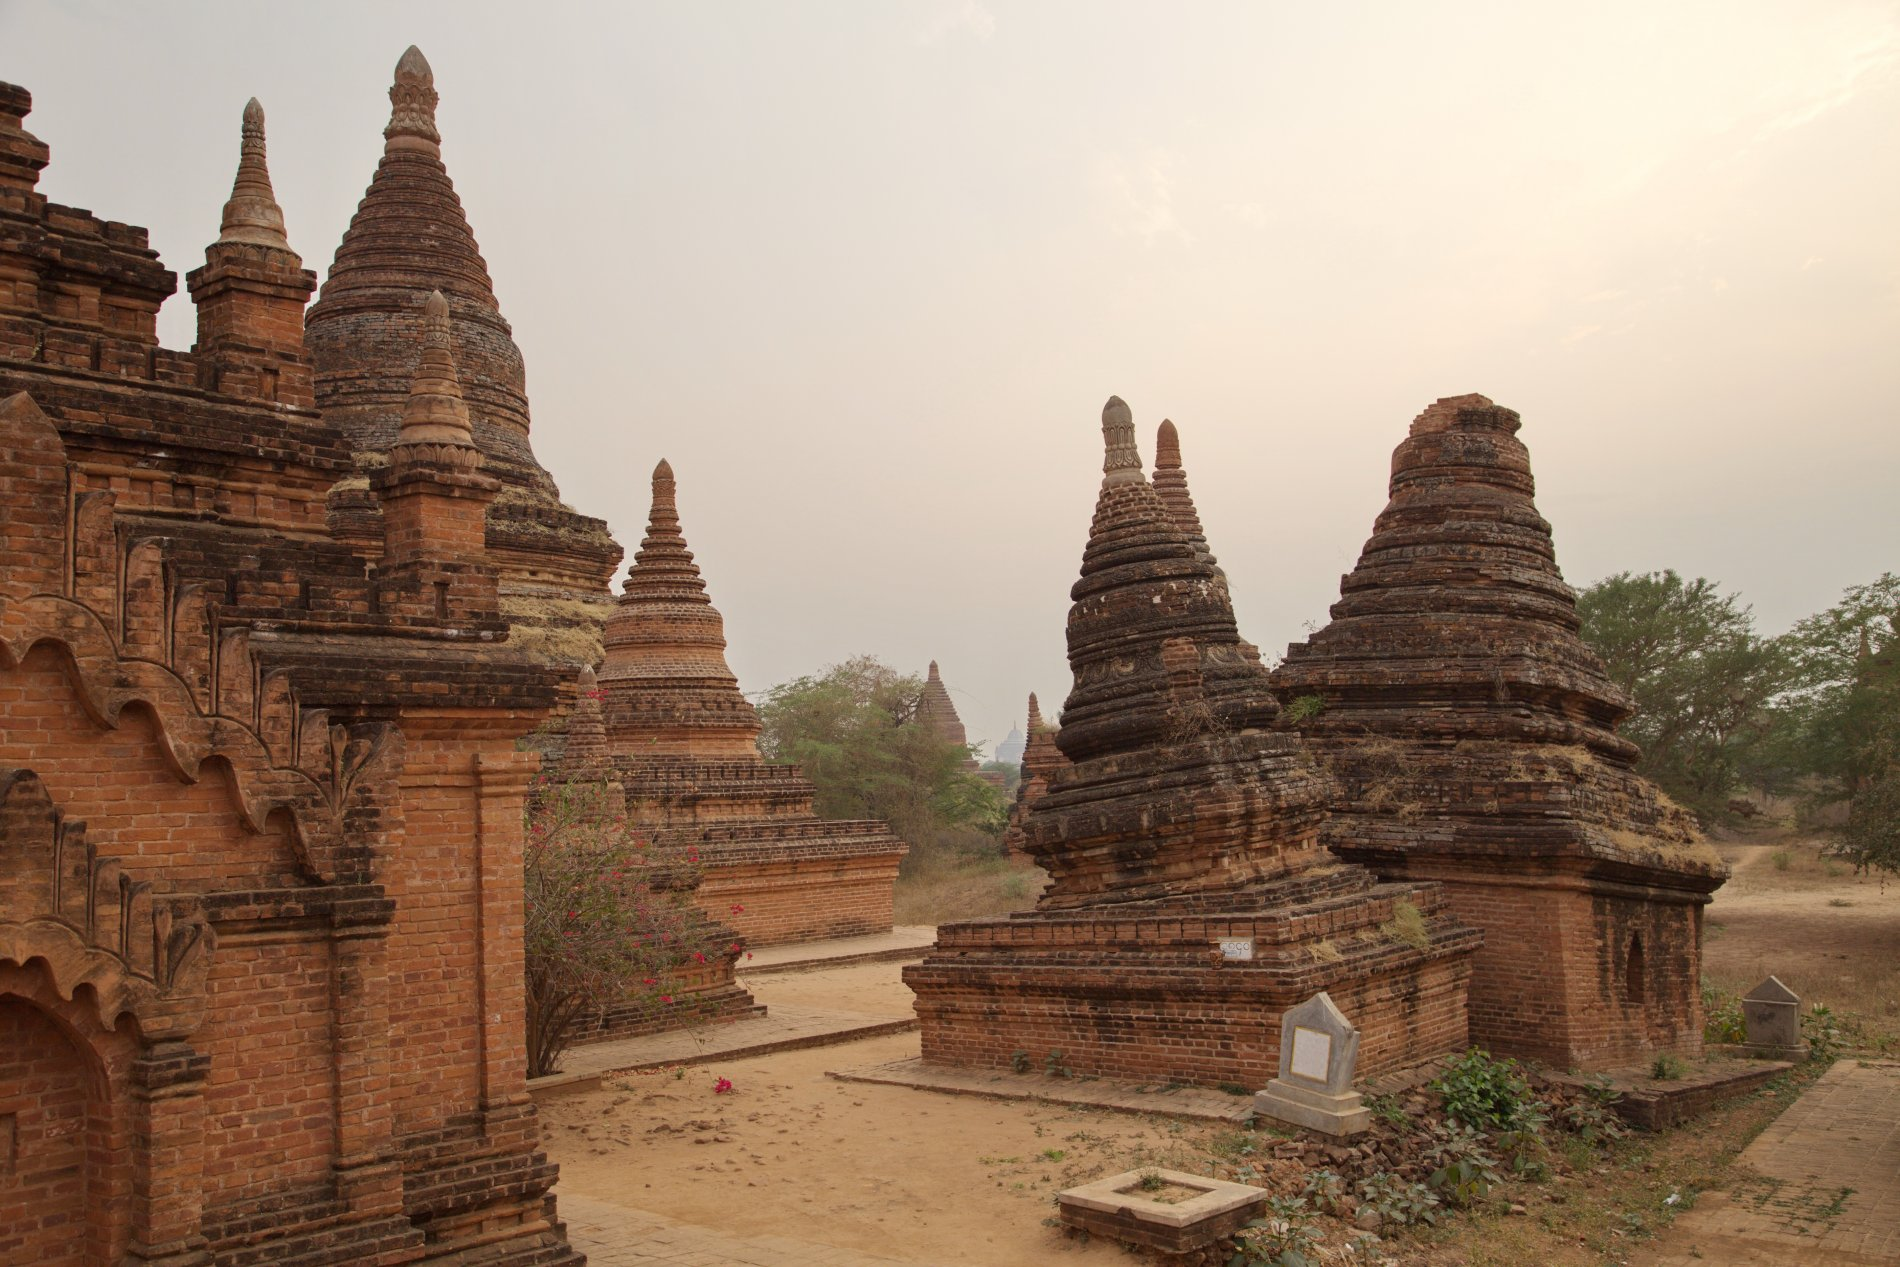 Bagan_184.jpg-commment